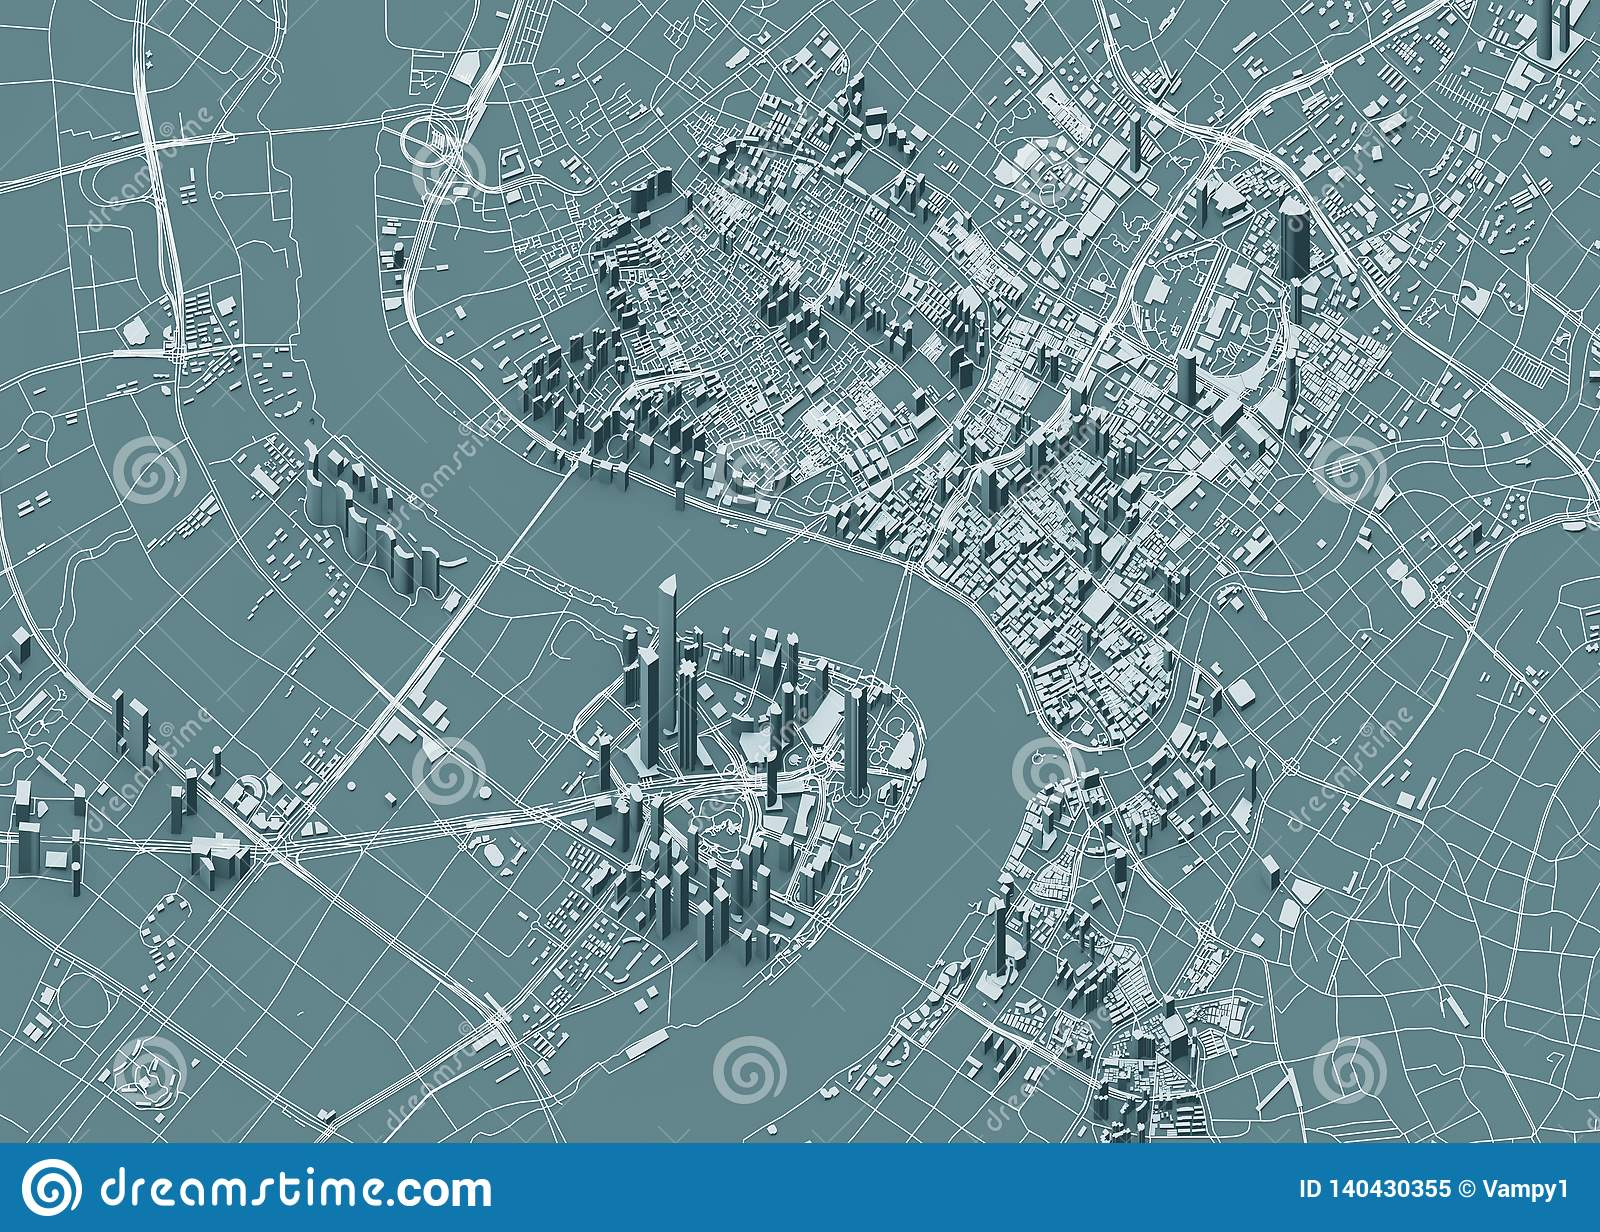 Satellite View Of Shanghai, Map Of The City With House And ... on asia of china, topographic map of china, map all rivers in china, road map of china, google earth china, map of russia and china, shopping of china, atlas of china, tourism of china, precipitation map of china, political map of china, large detailed maps of china, elevation map of china, aerial view of china, physical map of north china, google maps china, sixy of china, u.s. consulate guangzhou china, terracotta warriors of china, vintage map of china,